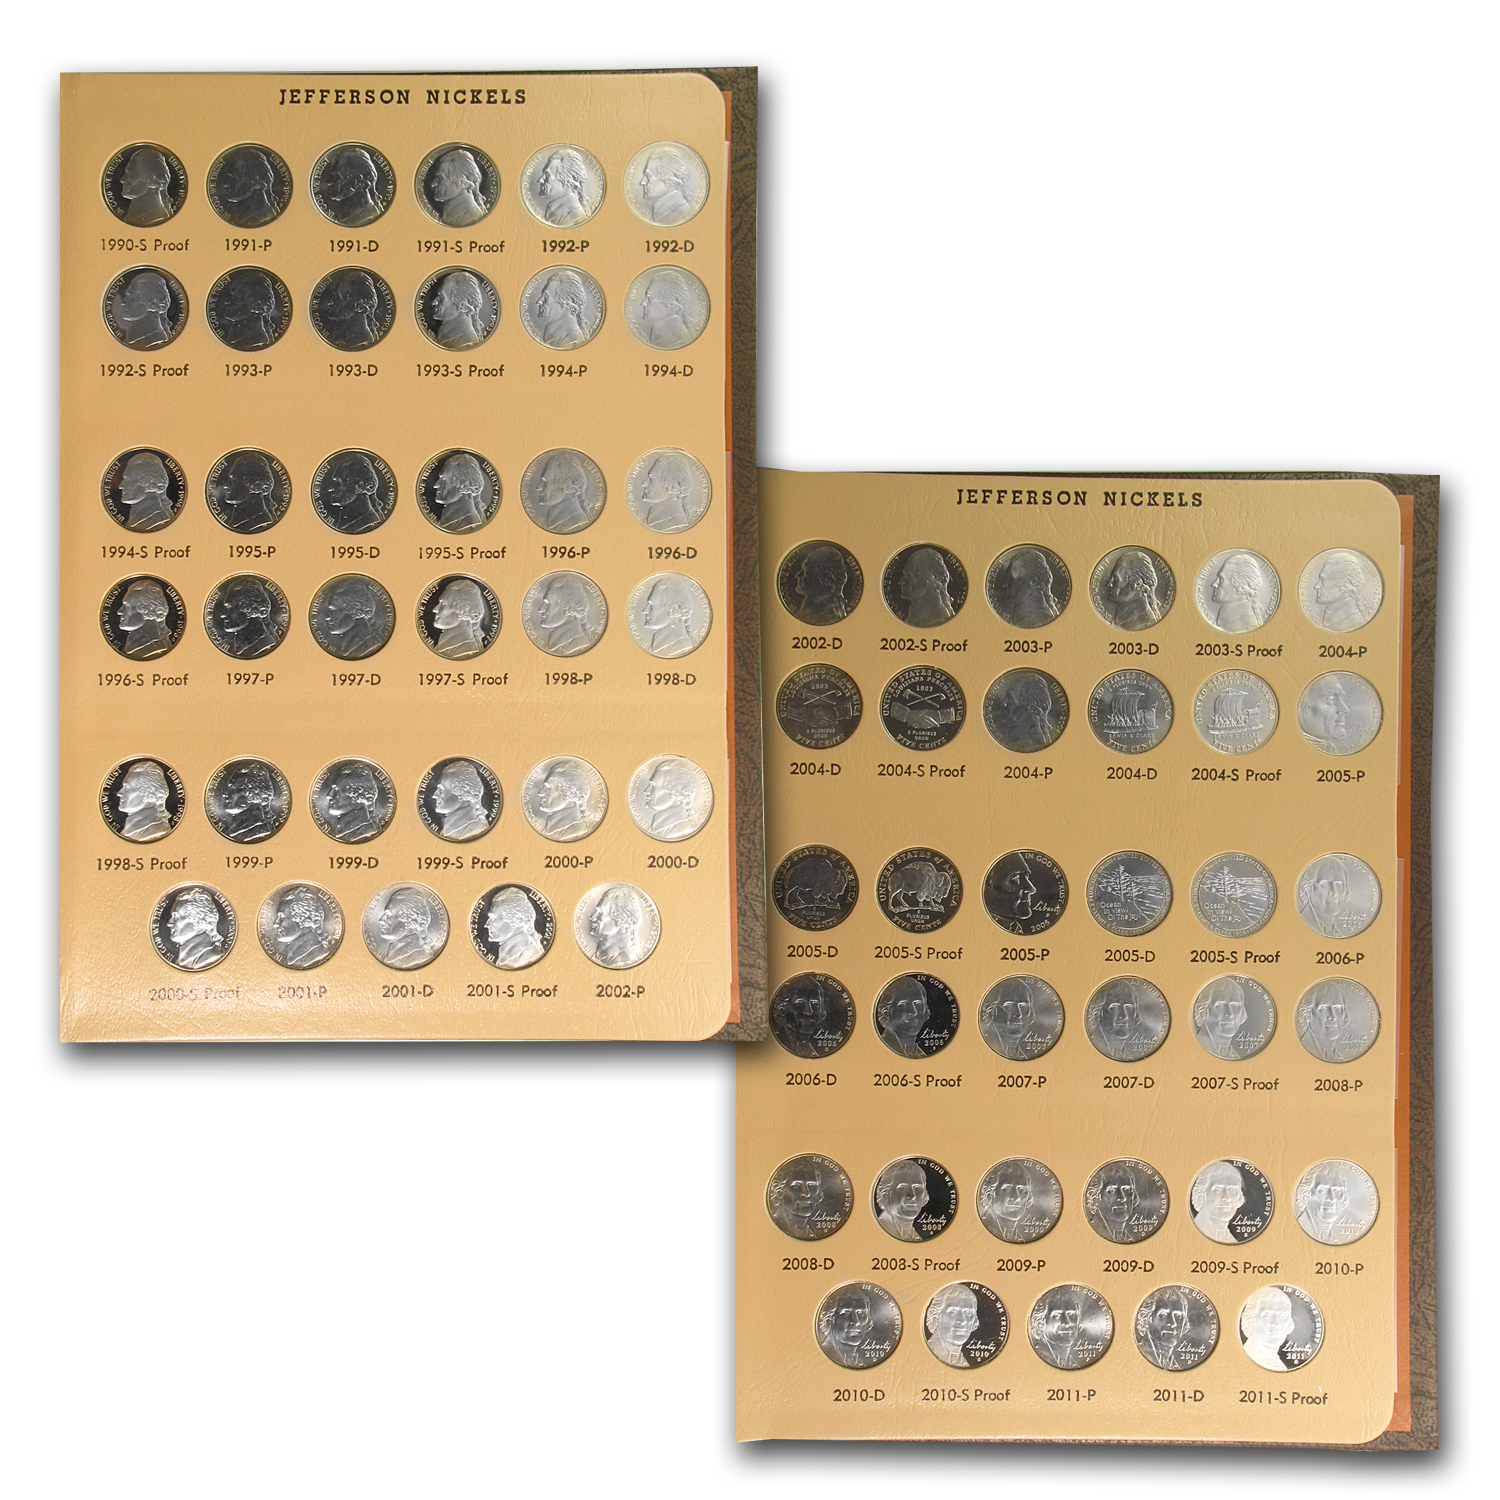 1938-2014 Jefferson Nickel Set in Album - BU & Proof 219 Coins!